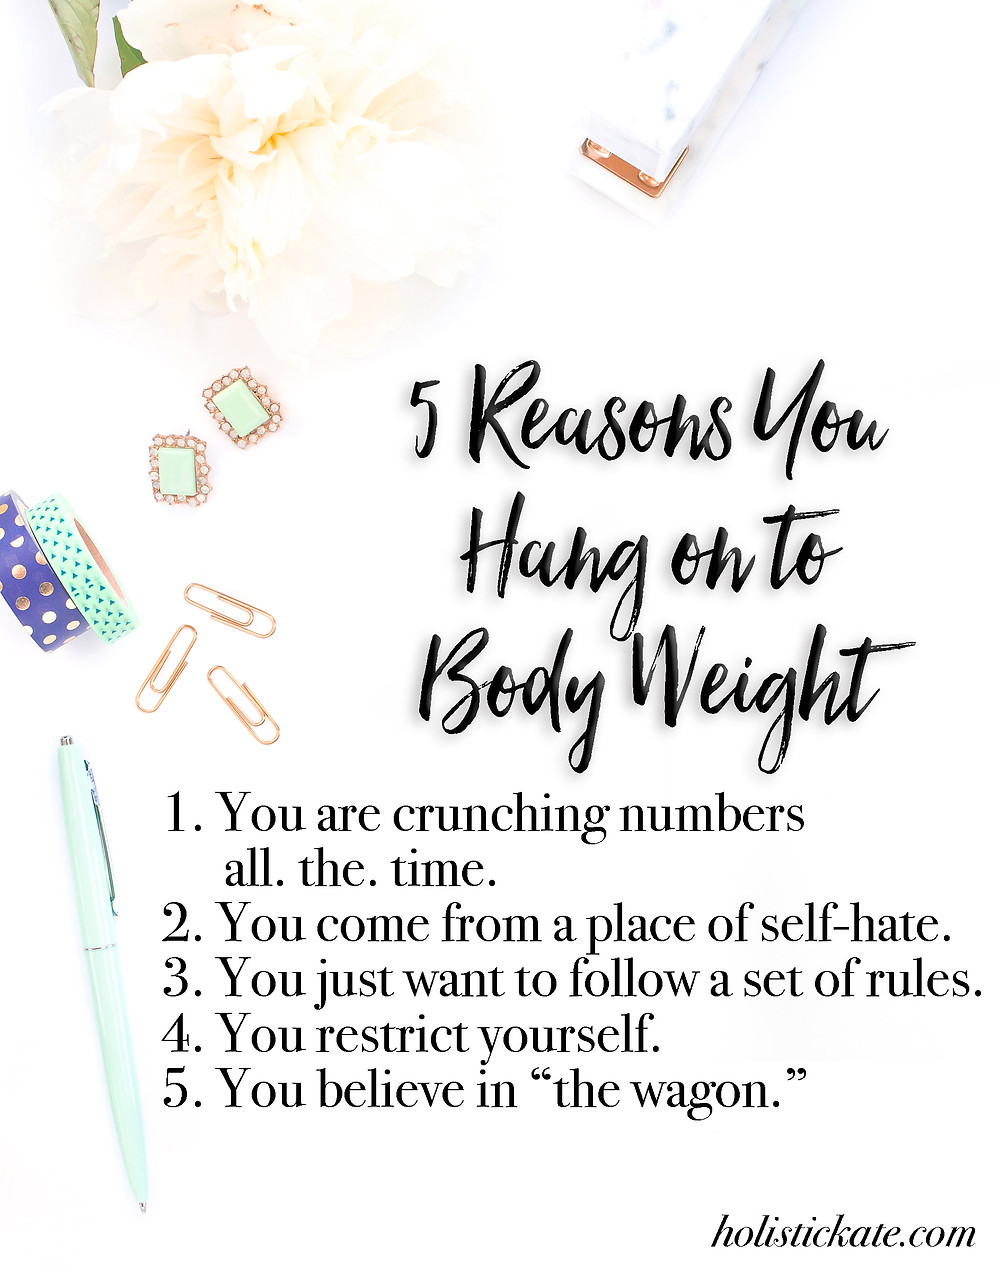 5 Reasons You Hang on to Body Weight